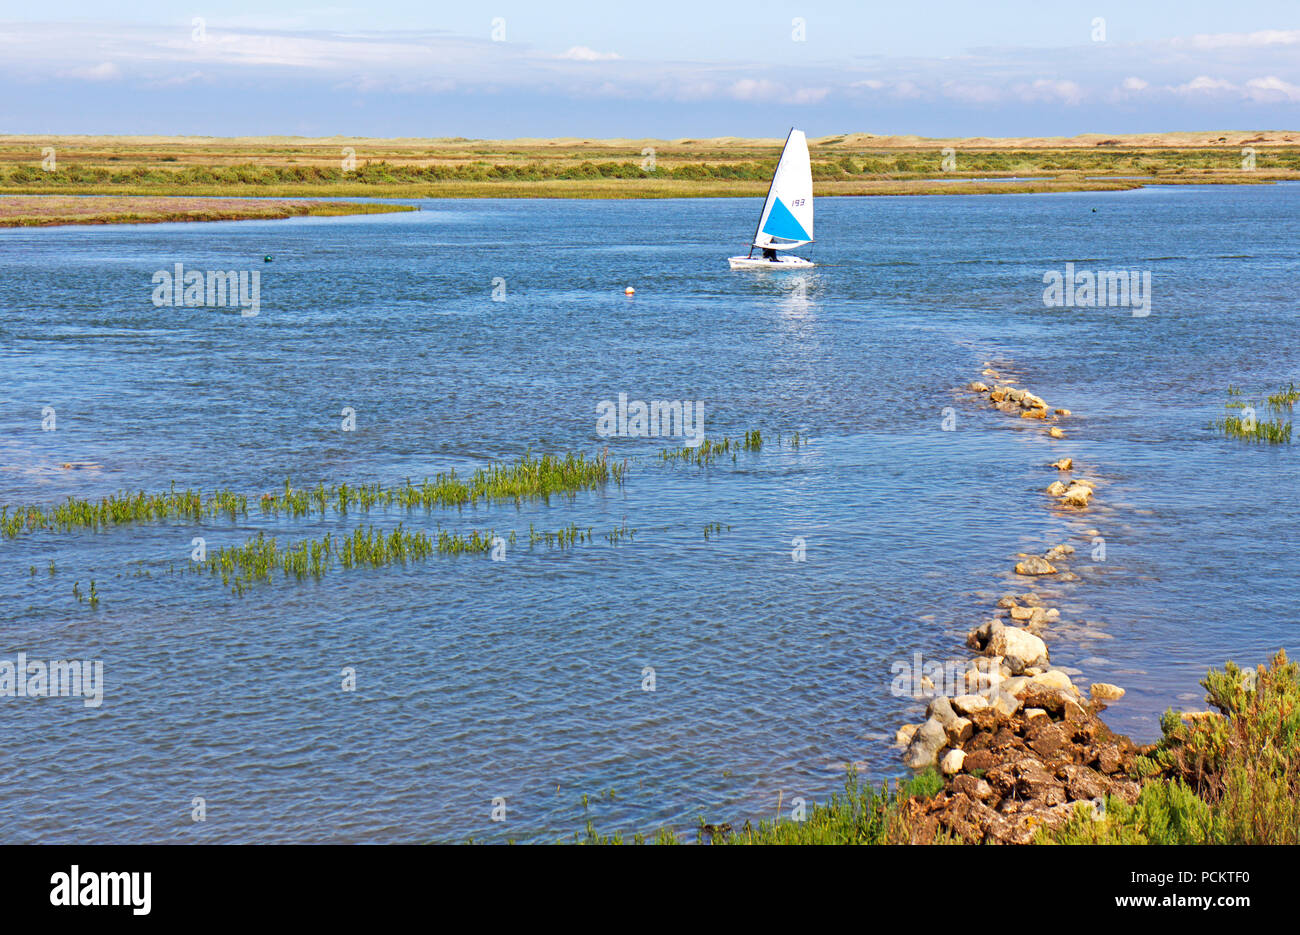 A solo yachtsman inbound at high water in a sailing dinghy in Overy Creek at Burnham Overy Staithe, Norfolk, England, United Kingdom, Europe. - Stock Image